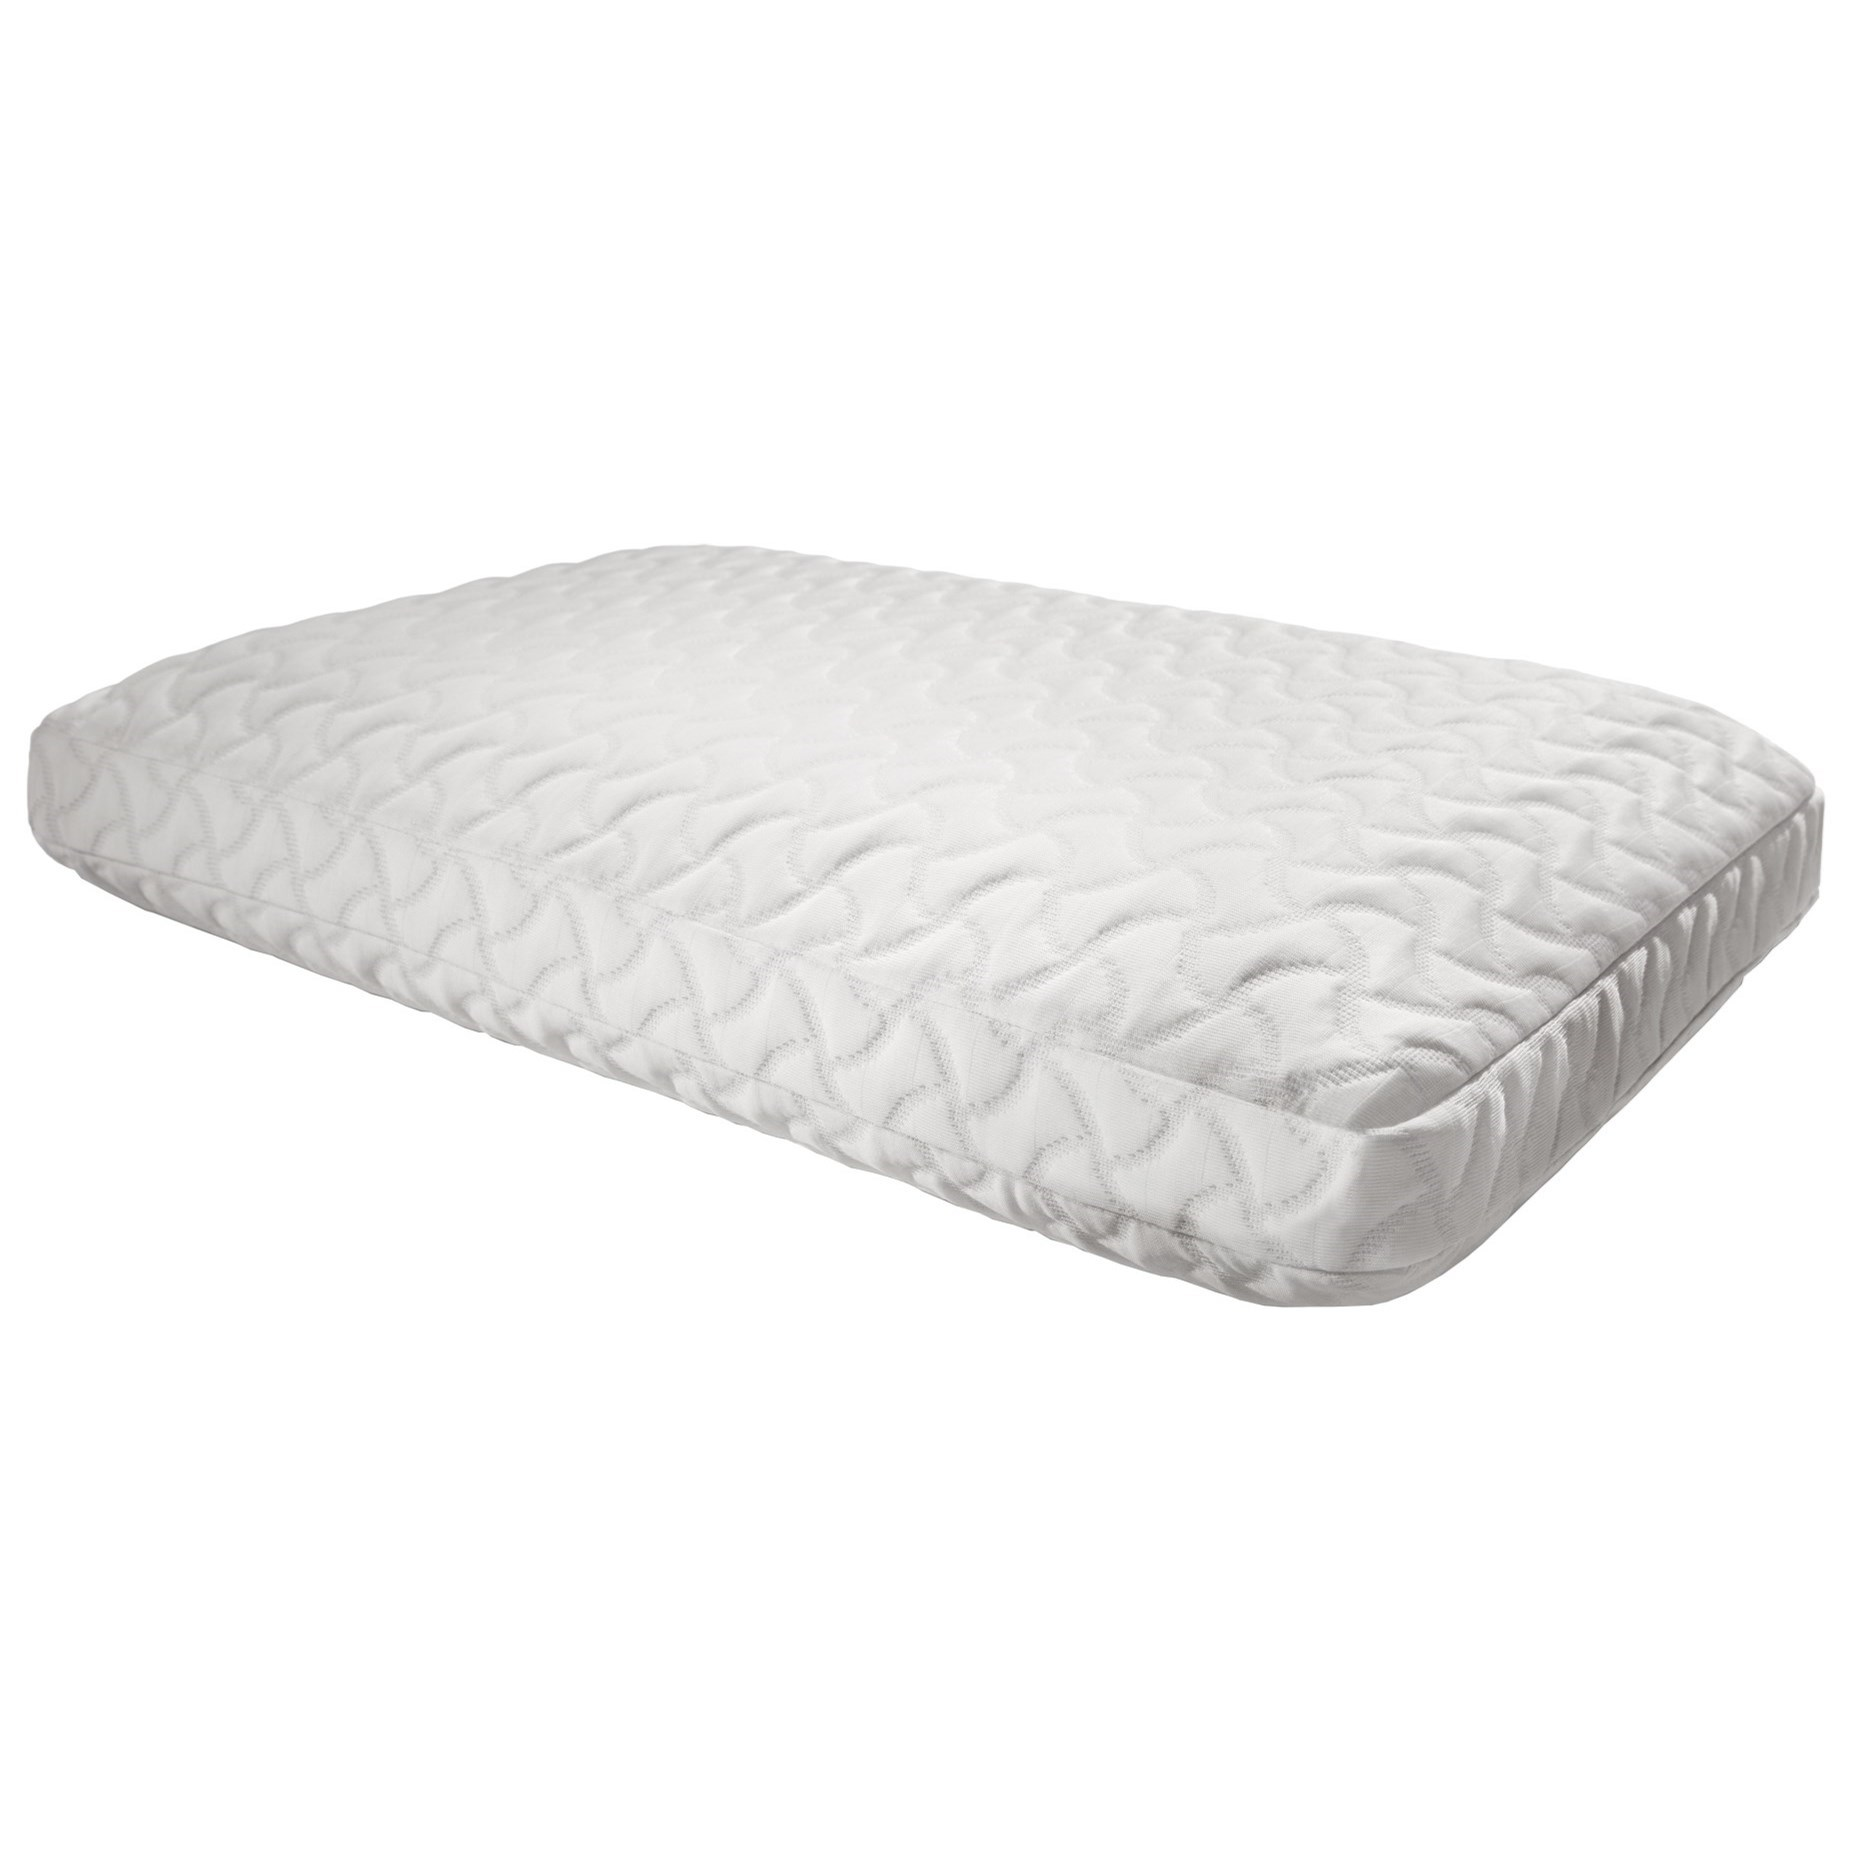 Tempur-Adapt Cloud Plus Cooling Pillow